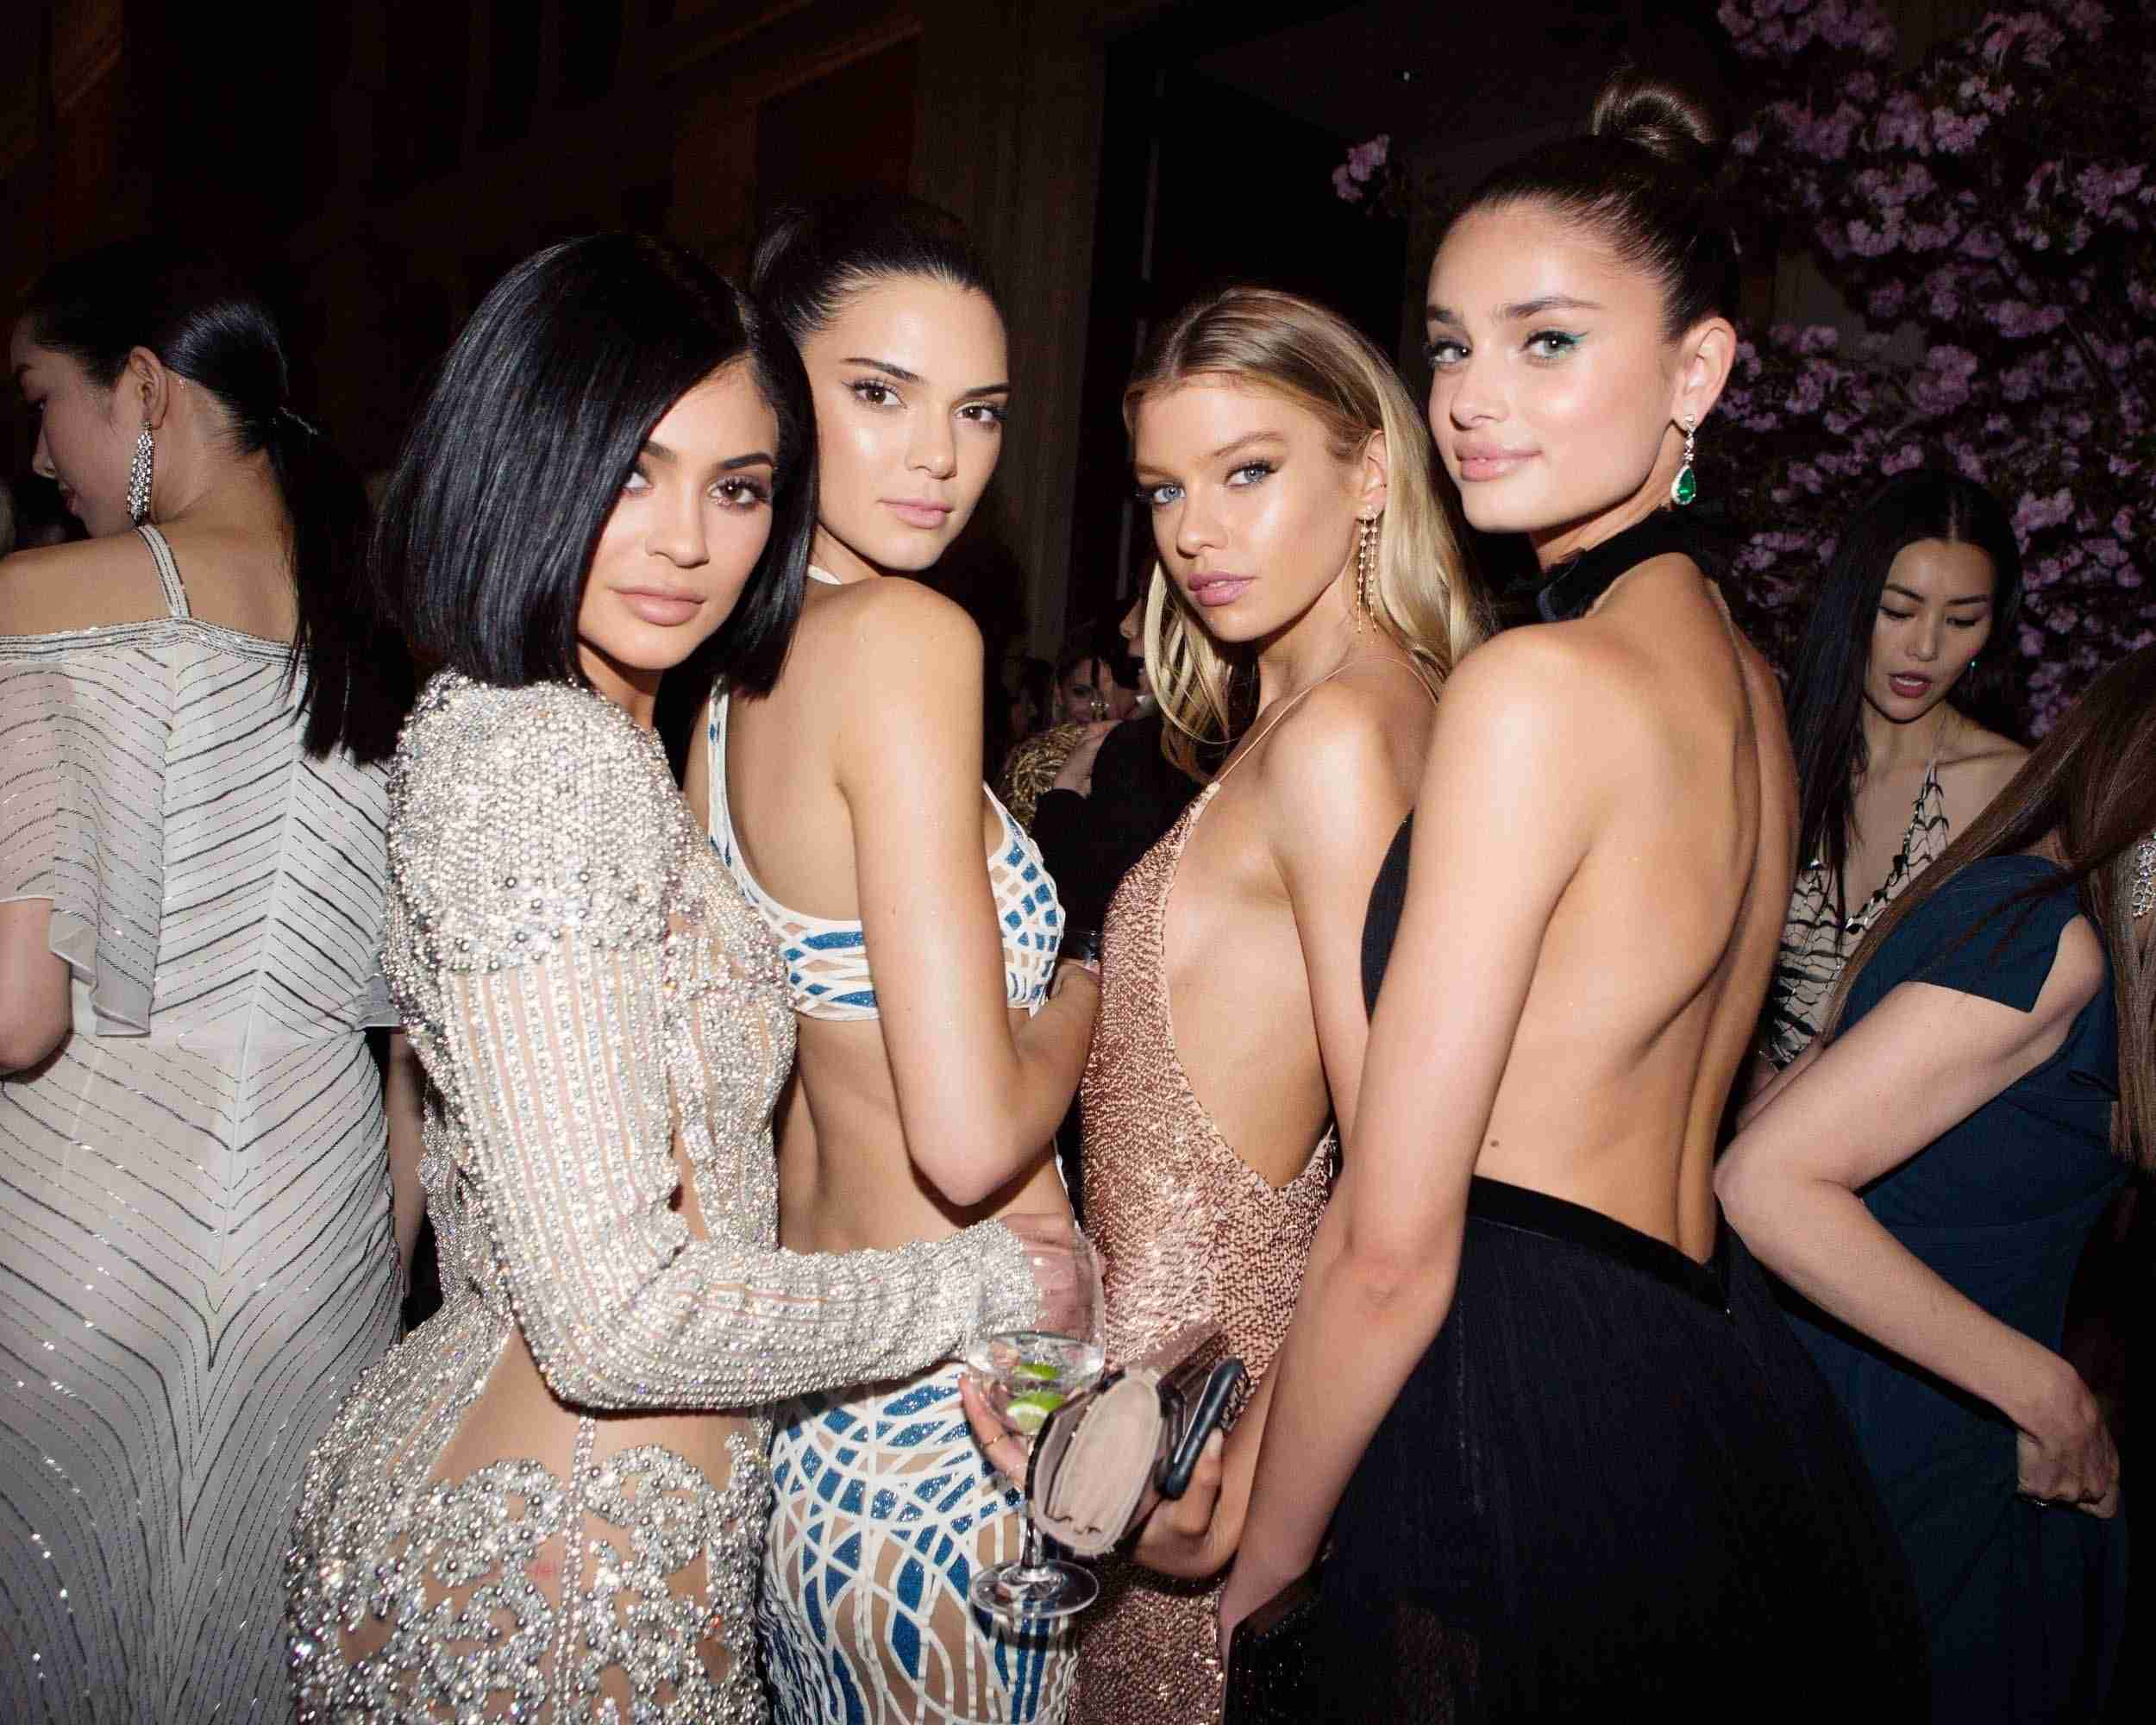 Met Gala 2017: Celebrities, Red Carpet Fashion, and Beauty Trends - Vogue